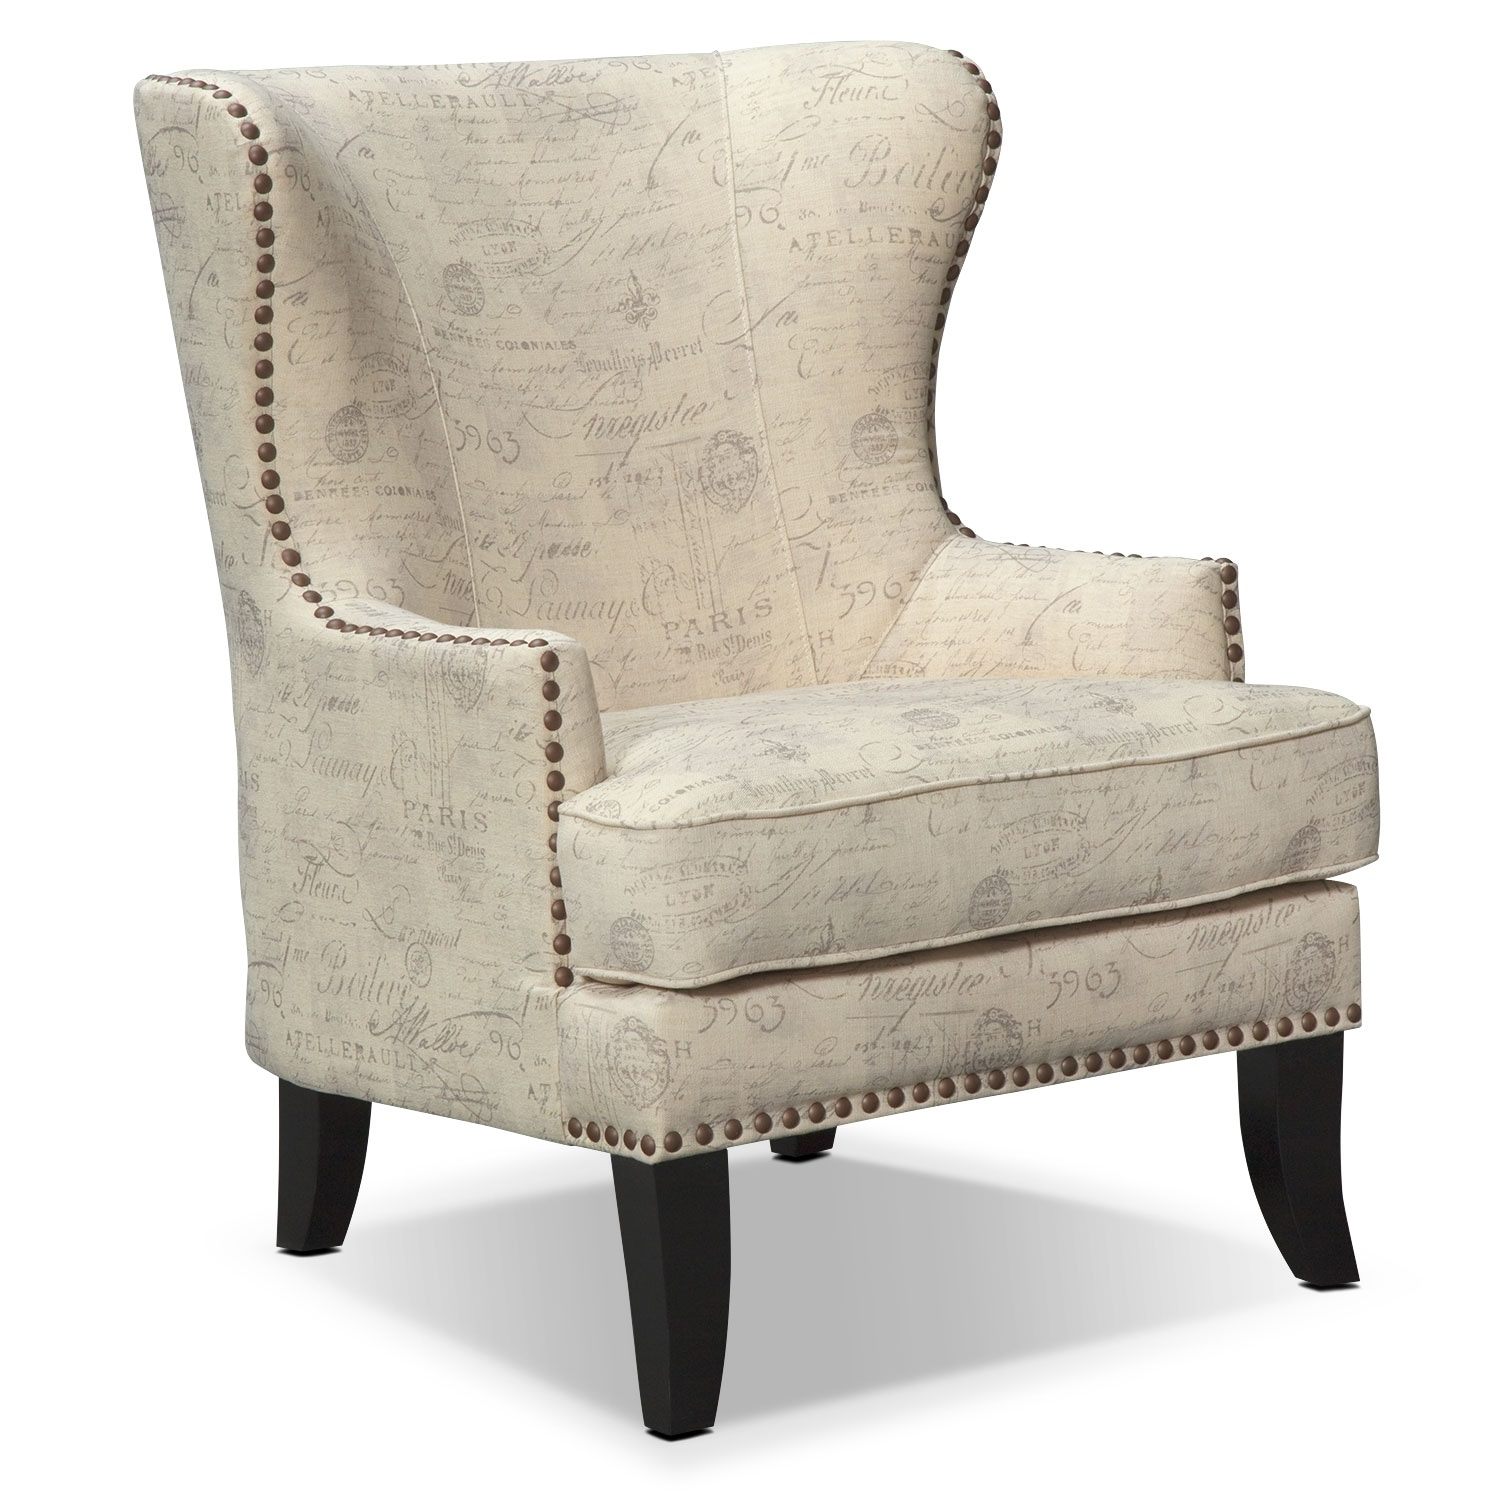 Lovely Marseille Accent Chair   Cream And Black